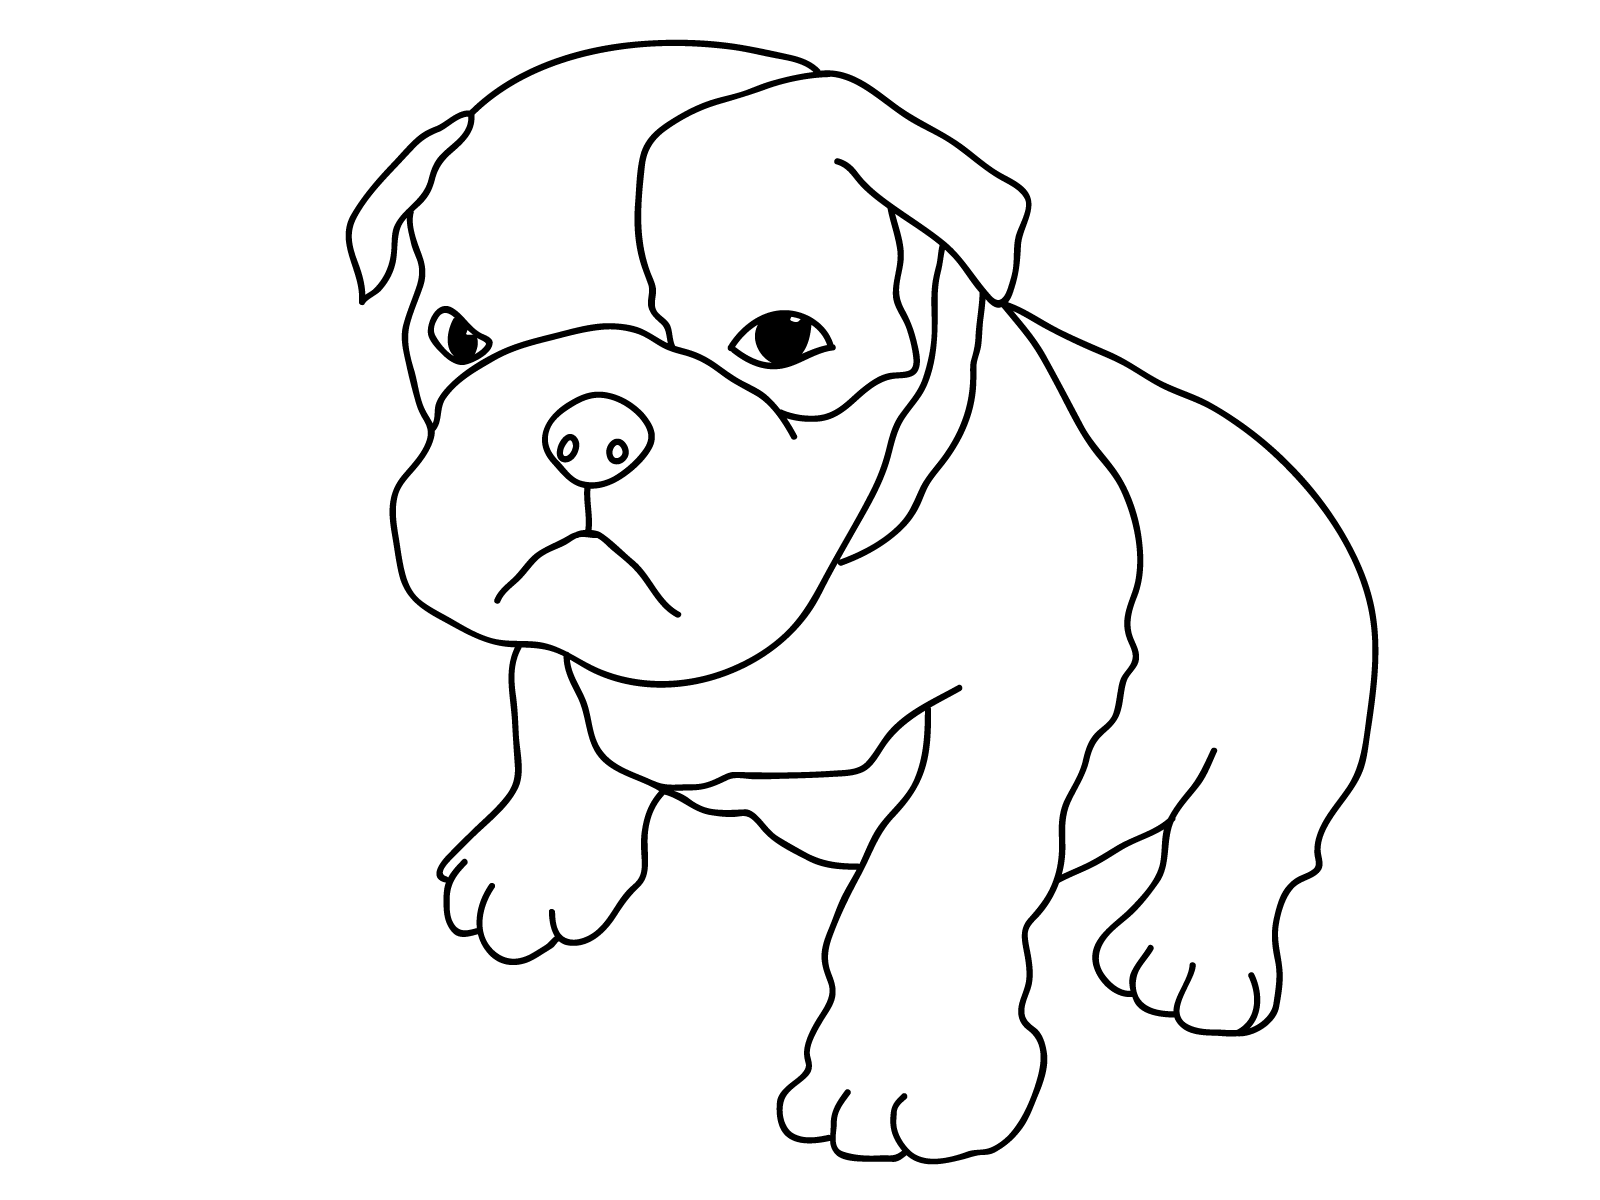 dogs pictures to print free printable dogs and puppies coloring pages for kids pictures dogs to print